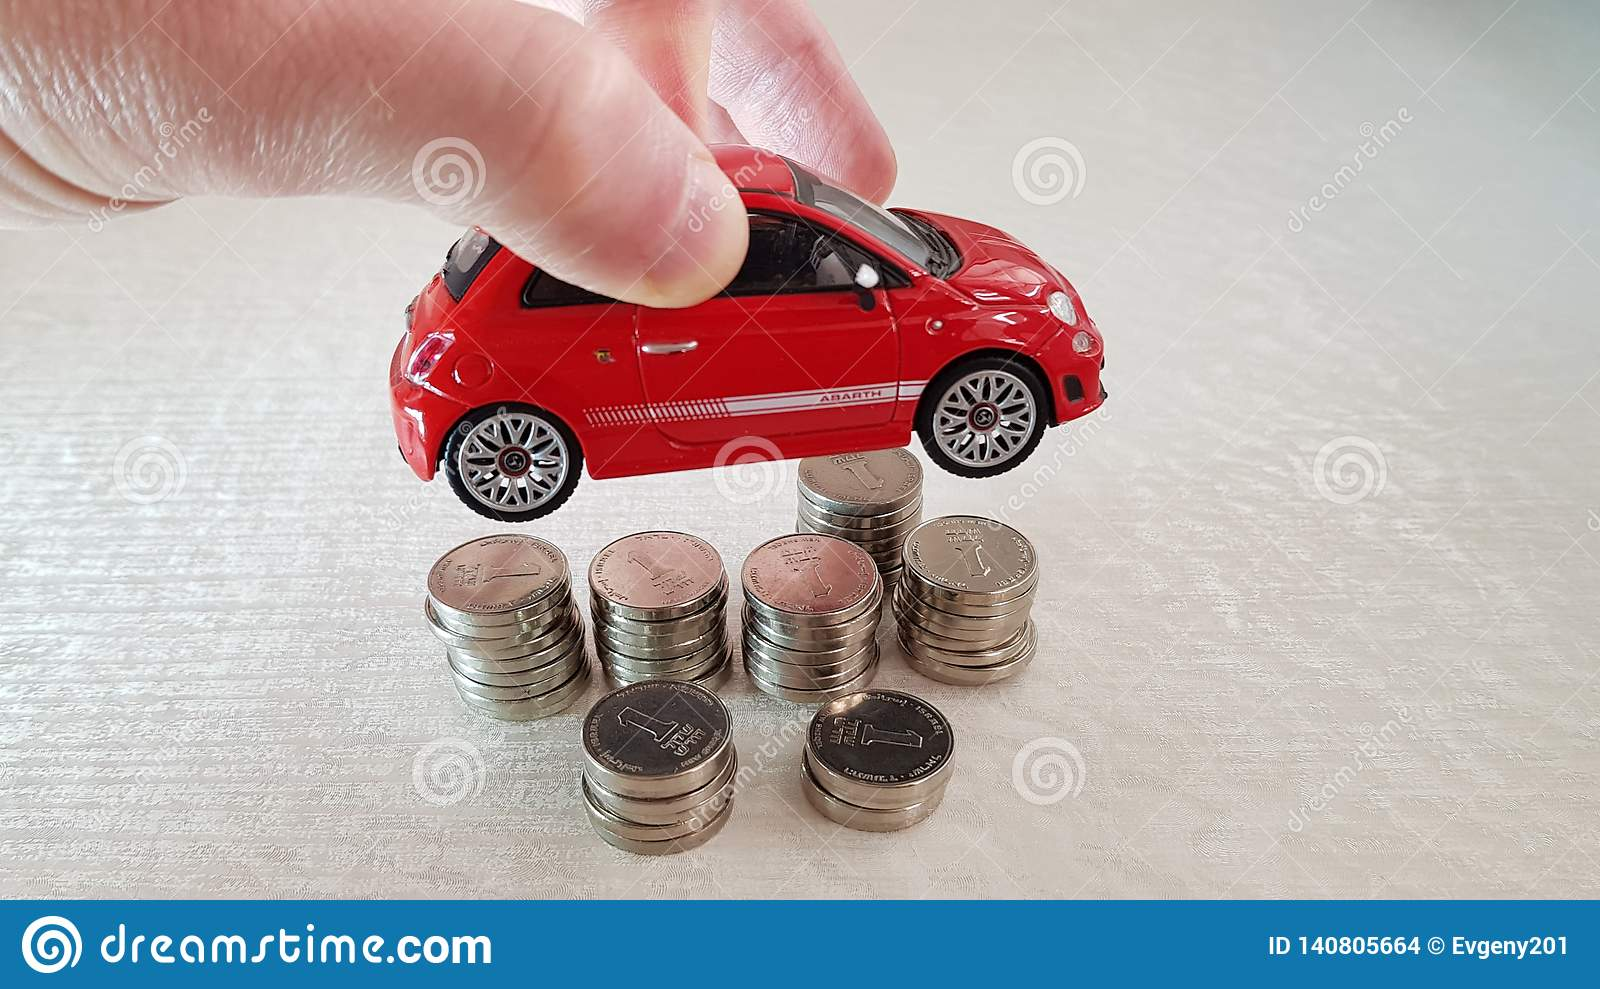 Holds in his fingers small red fiat 500 toy over pile of one Israeli shekel coins